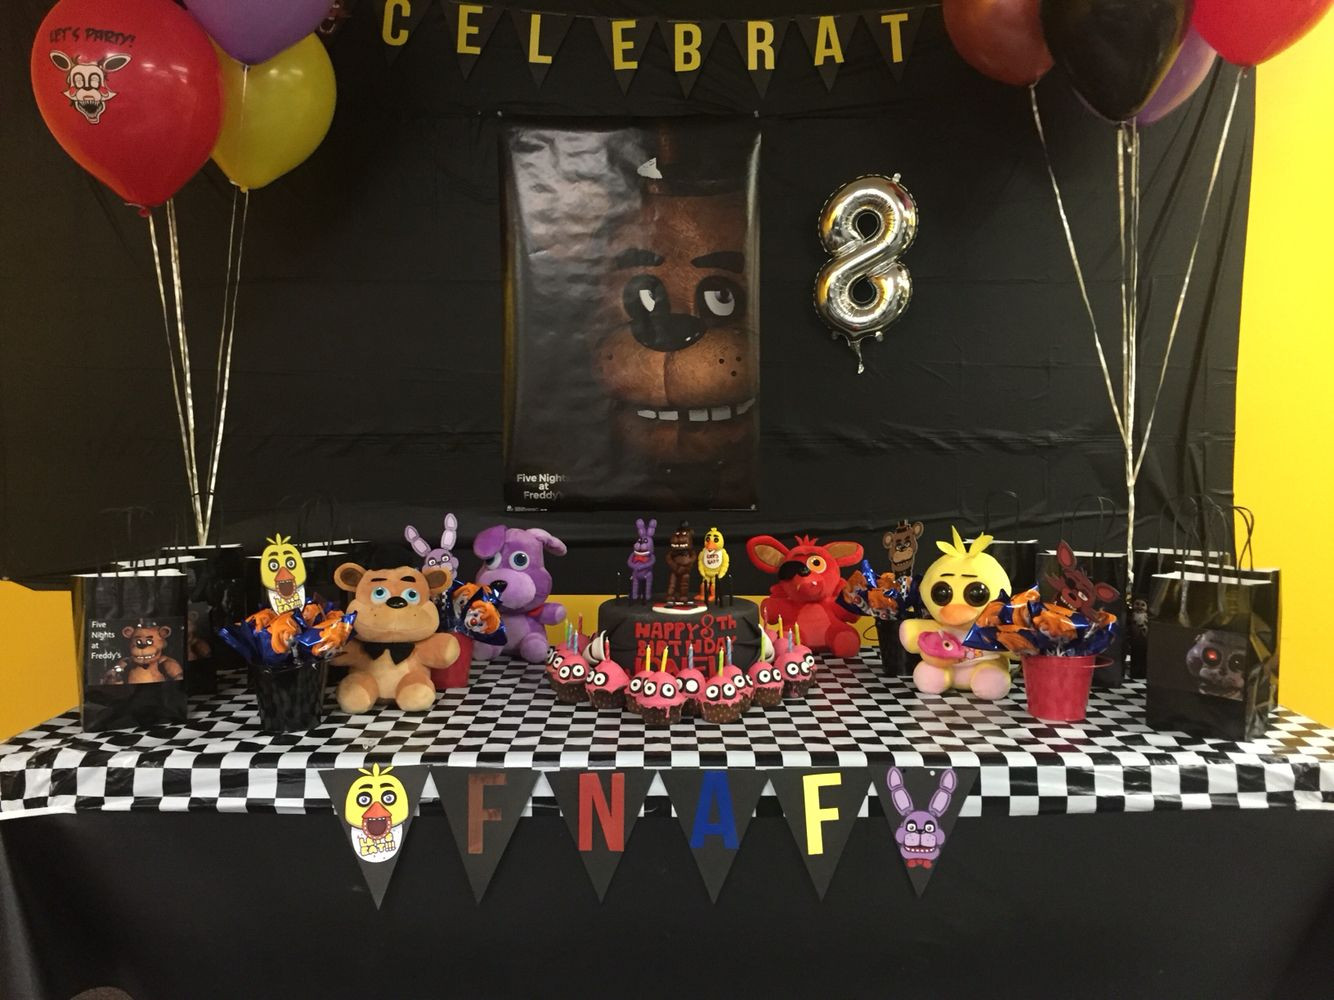 Best ideas about Fnaf Birthday Party Decorations . Save or Pin FNAF Five Nights At Freddys theme birthday decor I Now.